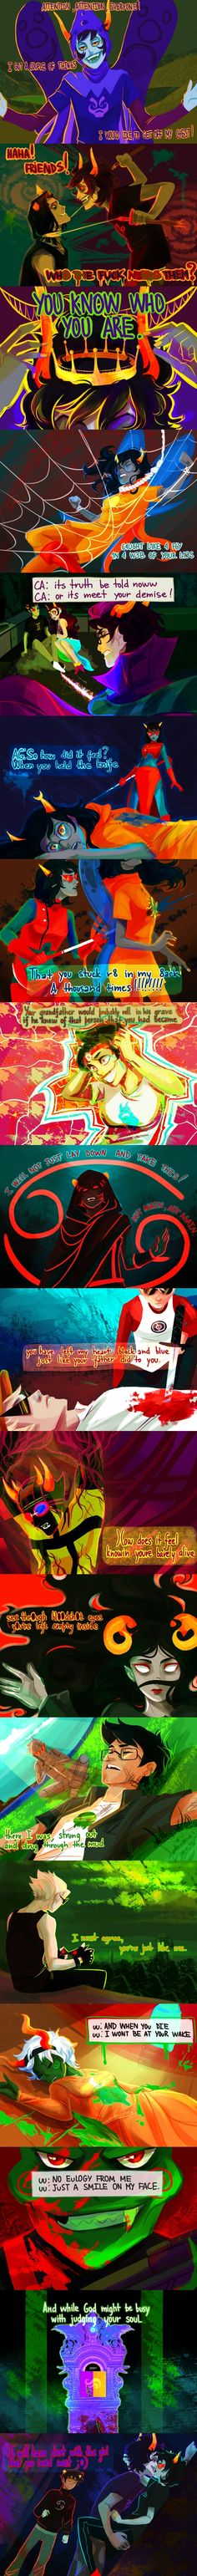 Caught Like a Fly by Falling in Reverse Tags: Anime, Music, Mecha, Lyrics, Two-tone Hair, Homestuck, Terezi Pyrope